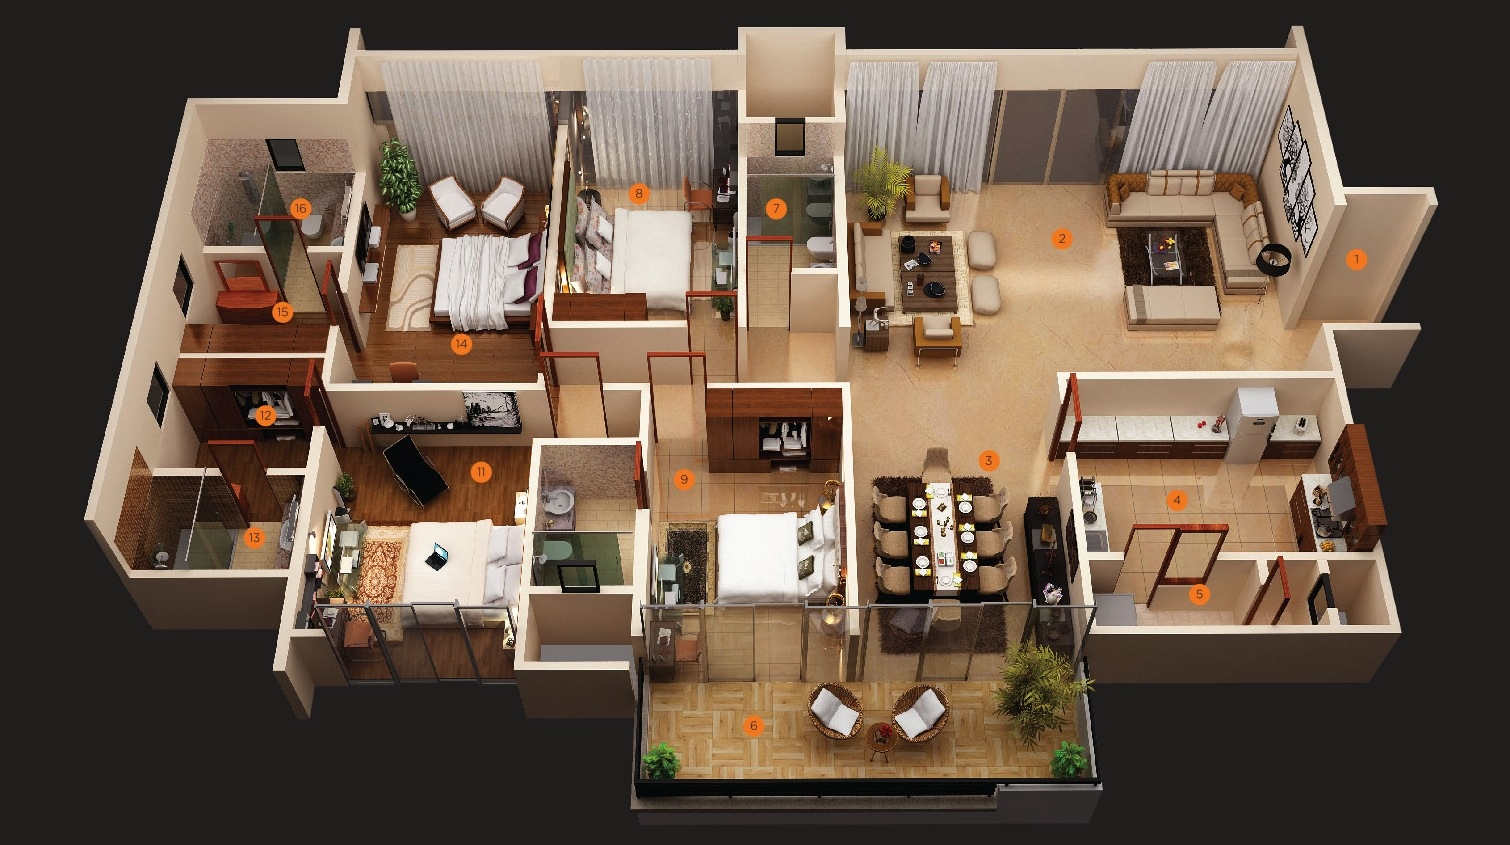 Modern 4 bedroom house plans decor units for 4 home decor